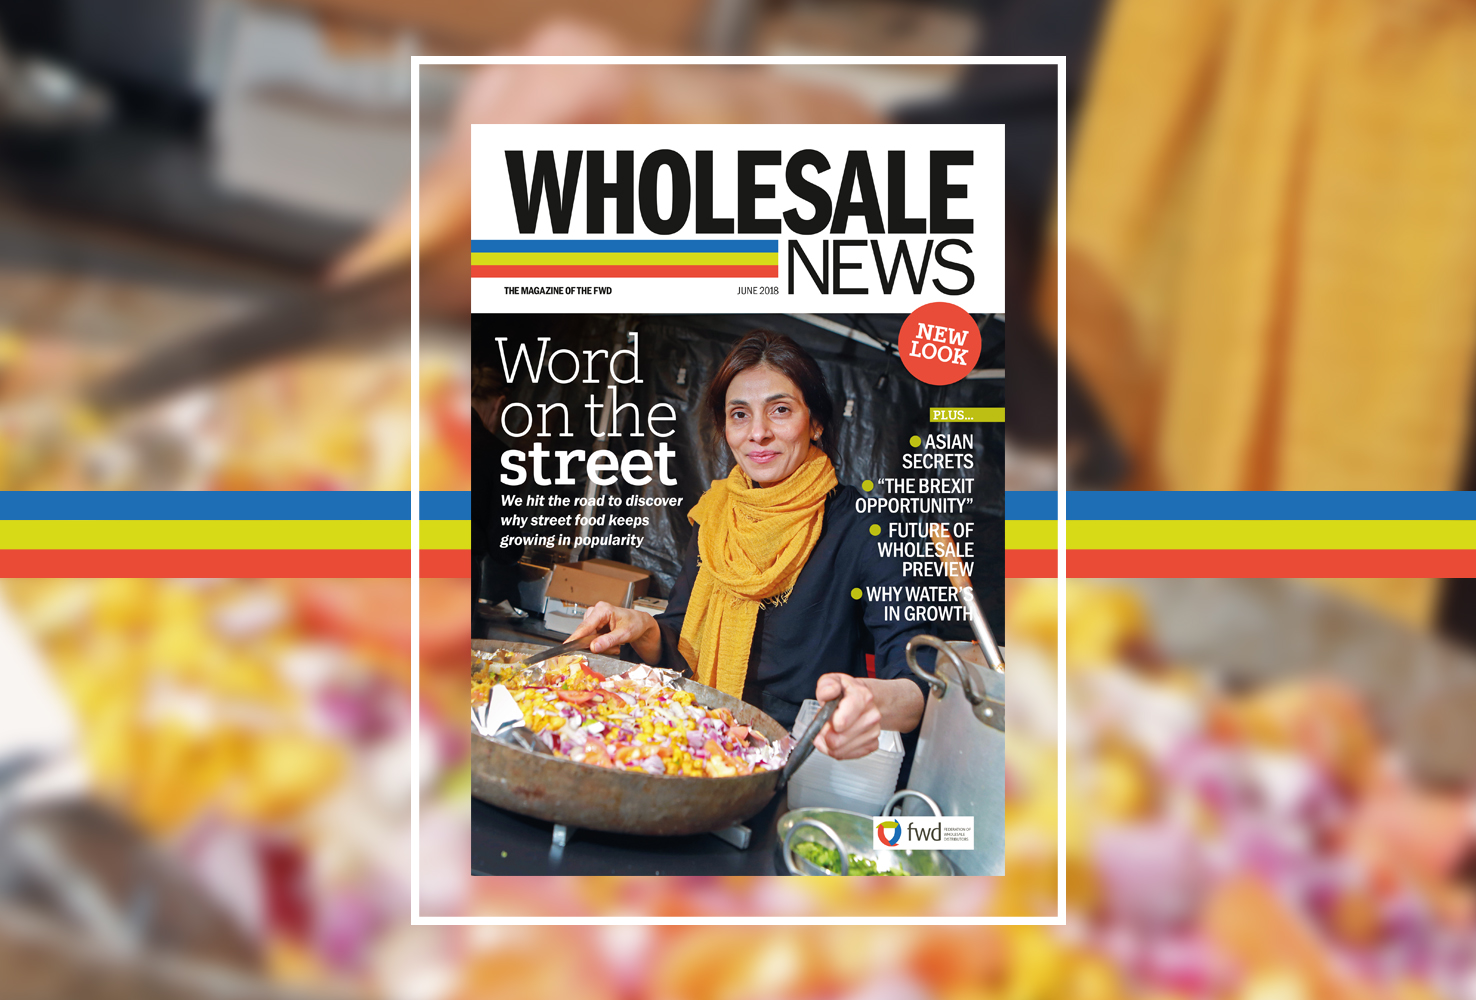 Take a look at June's Wholesale News - FWD